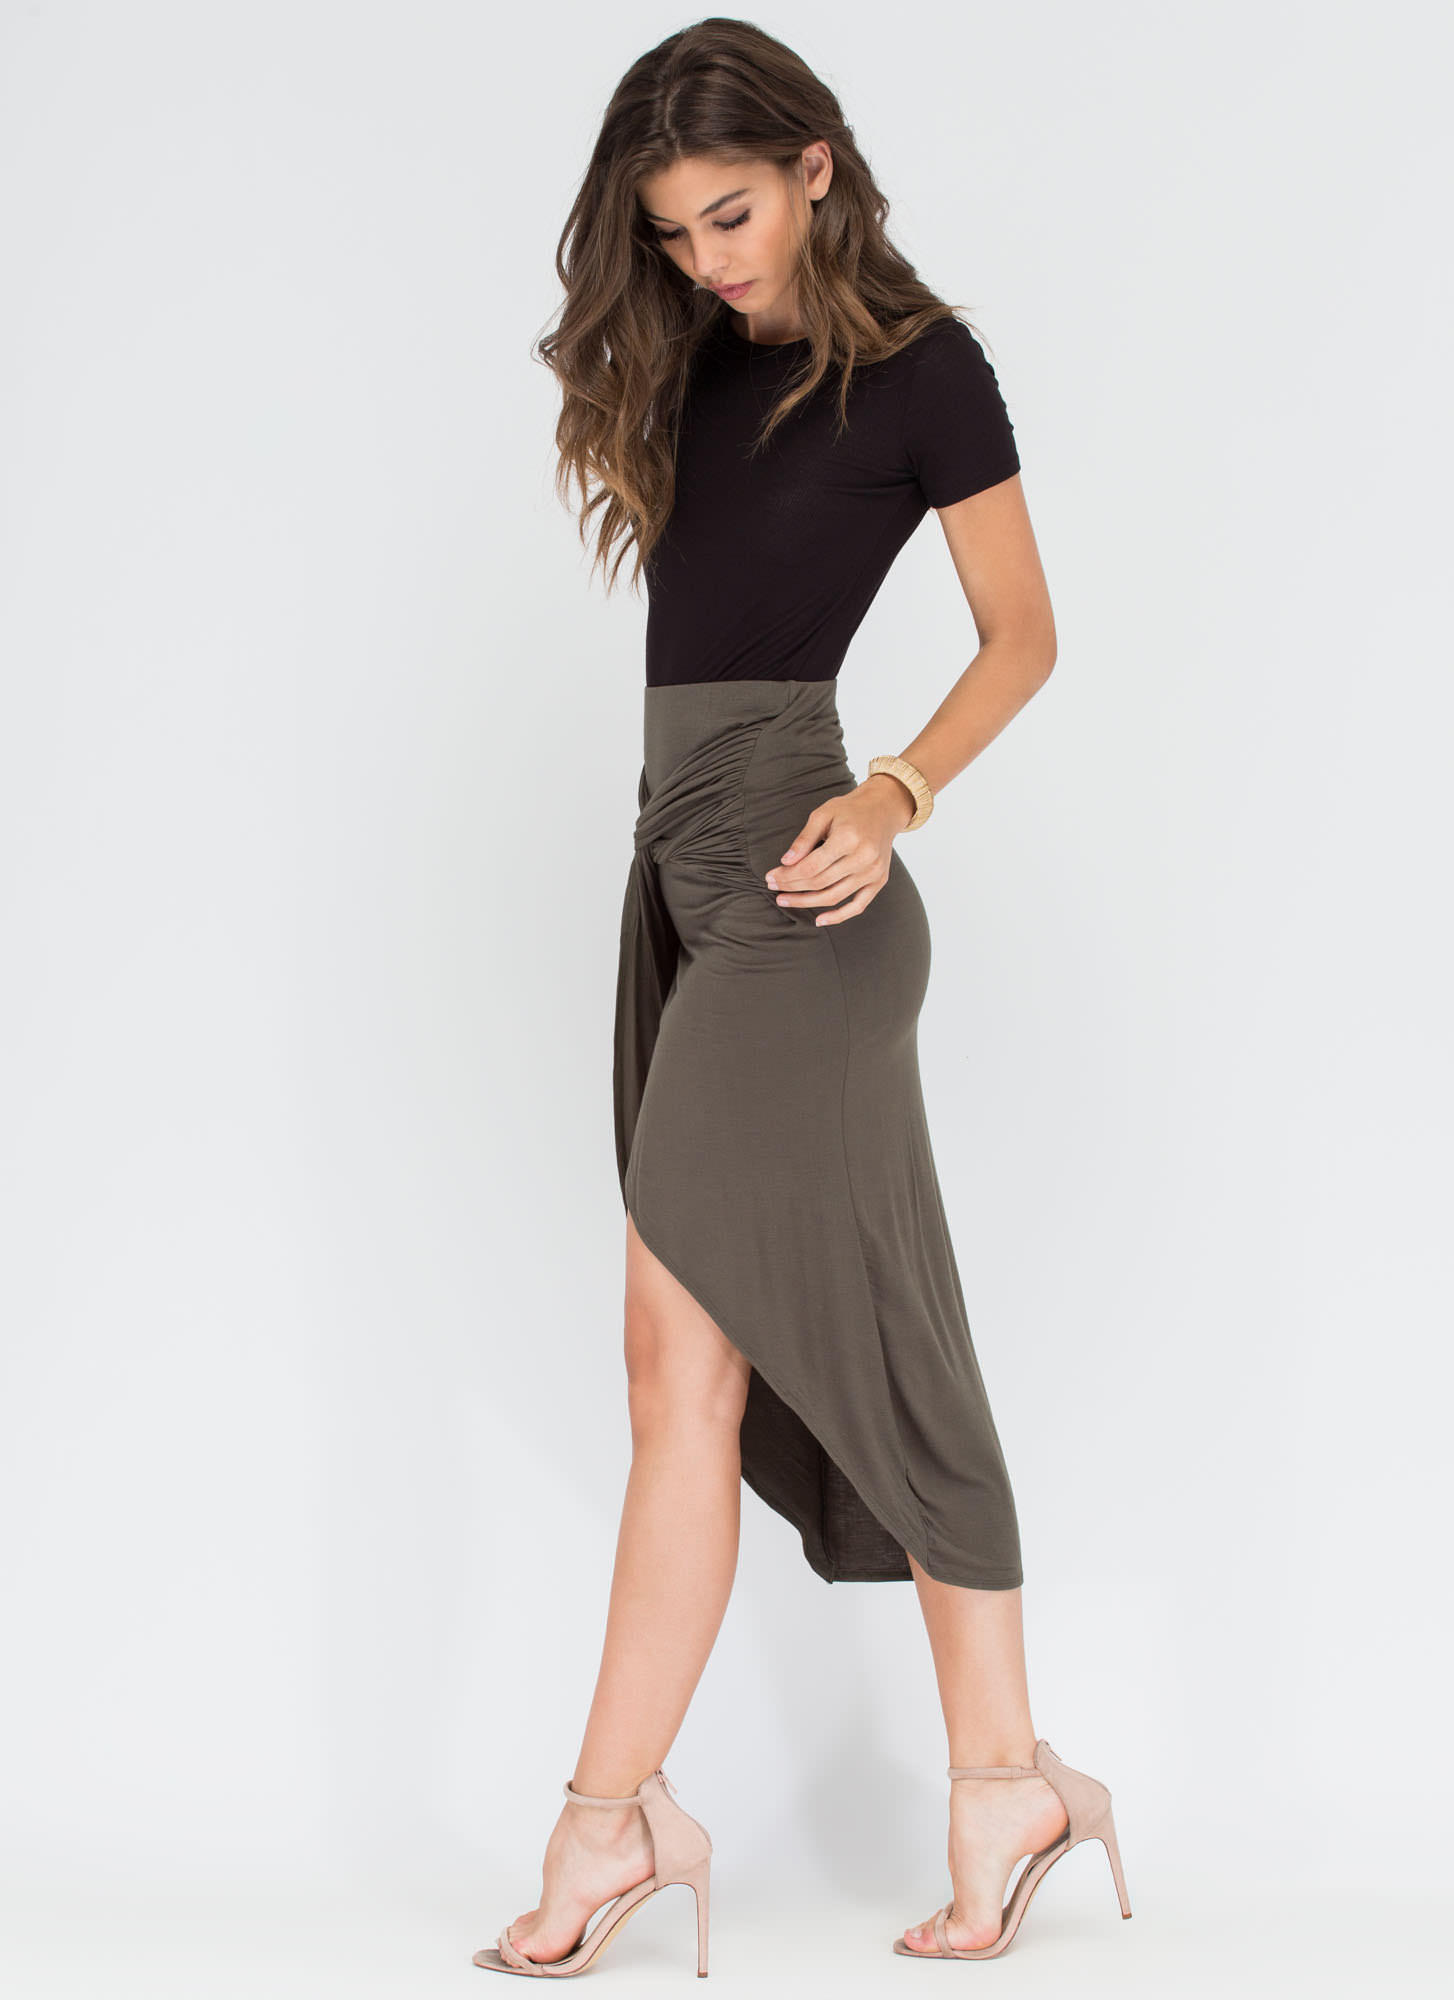 Tangled Up In You Knotted Skirt OLIVE